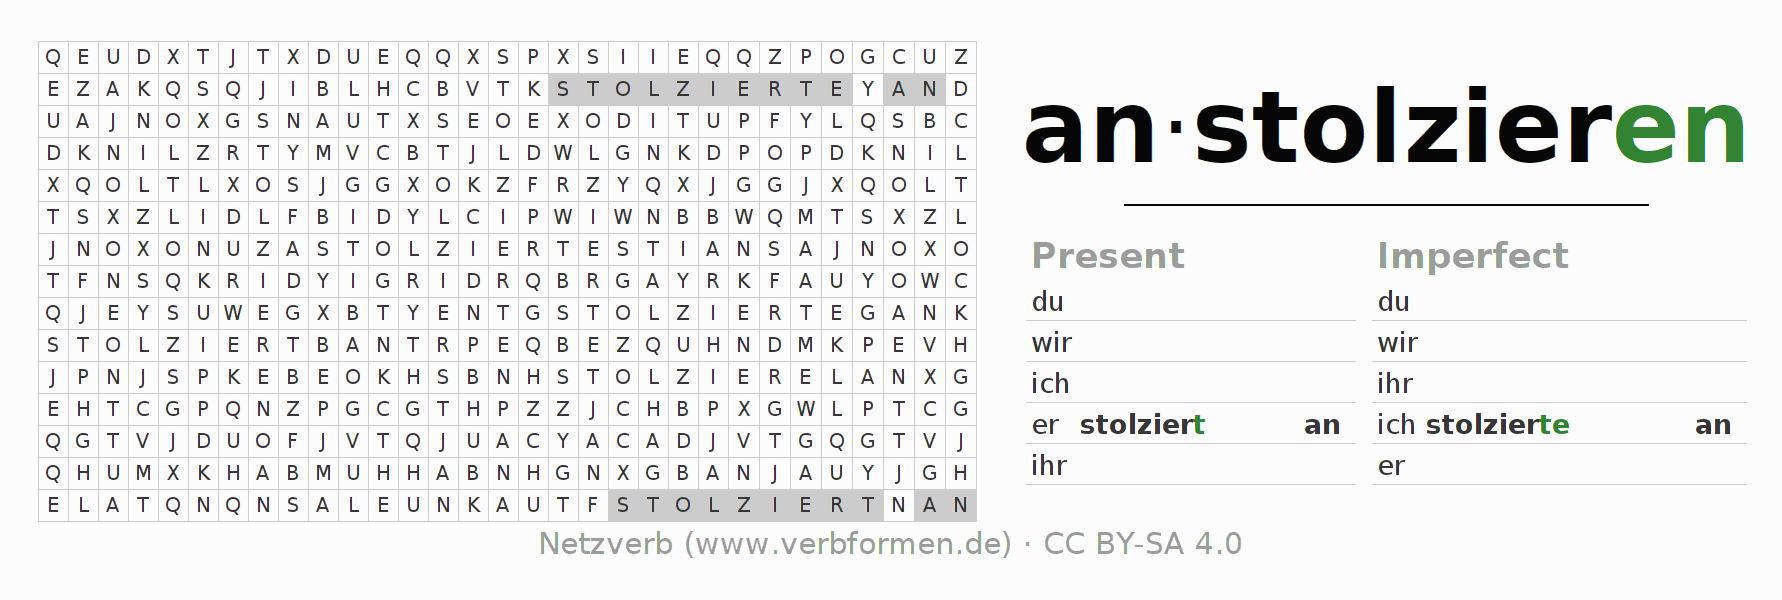 Word search puzzle for the conjugation of the verb anstolzieren